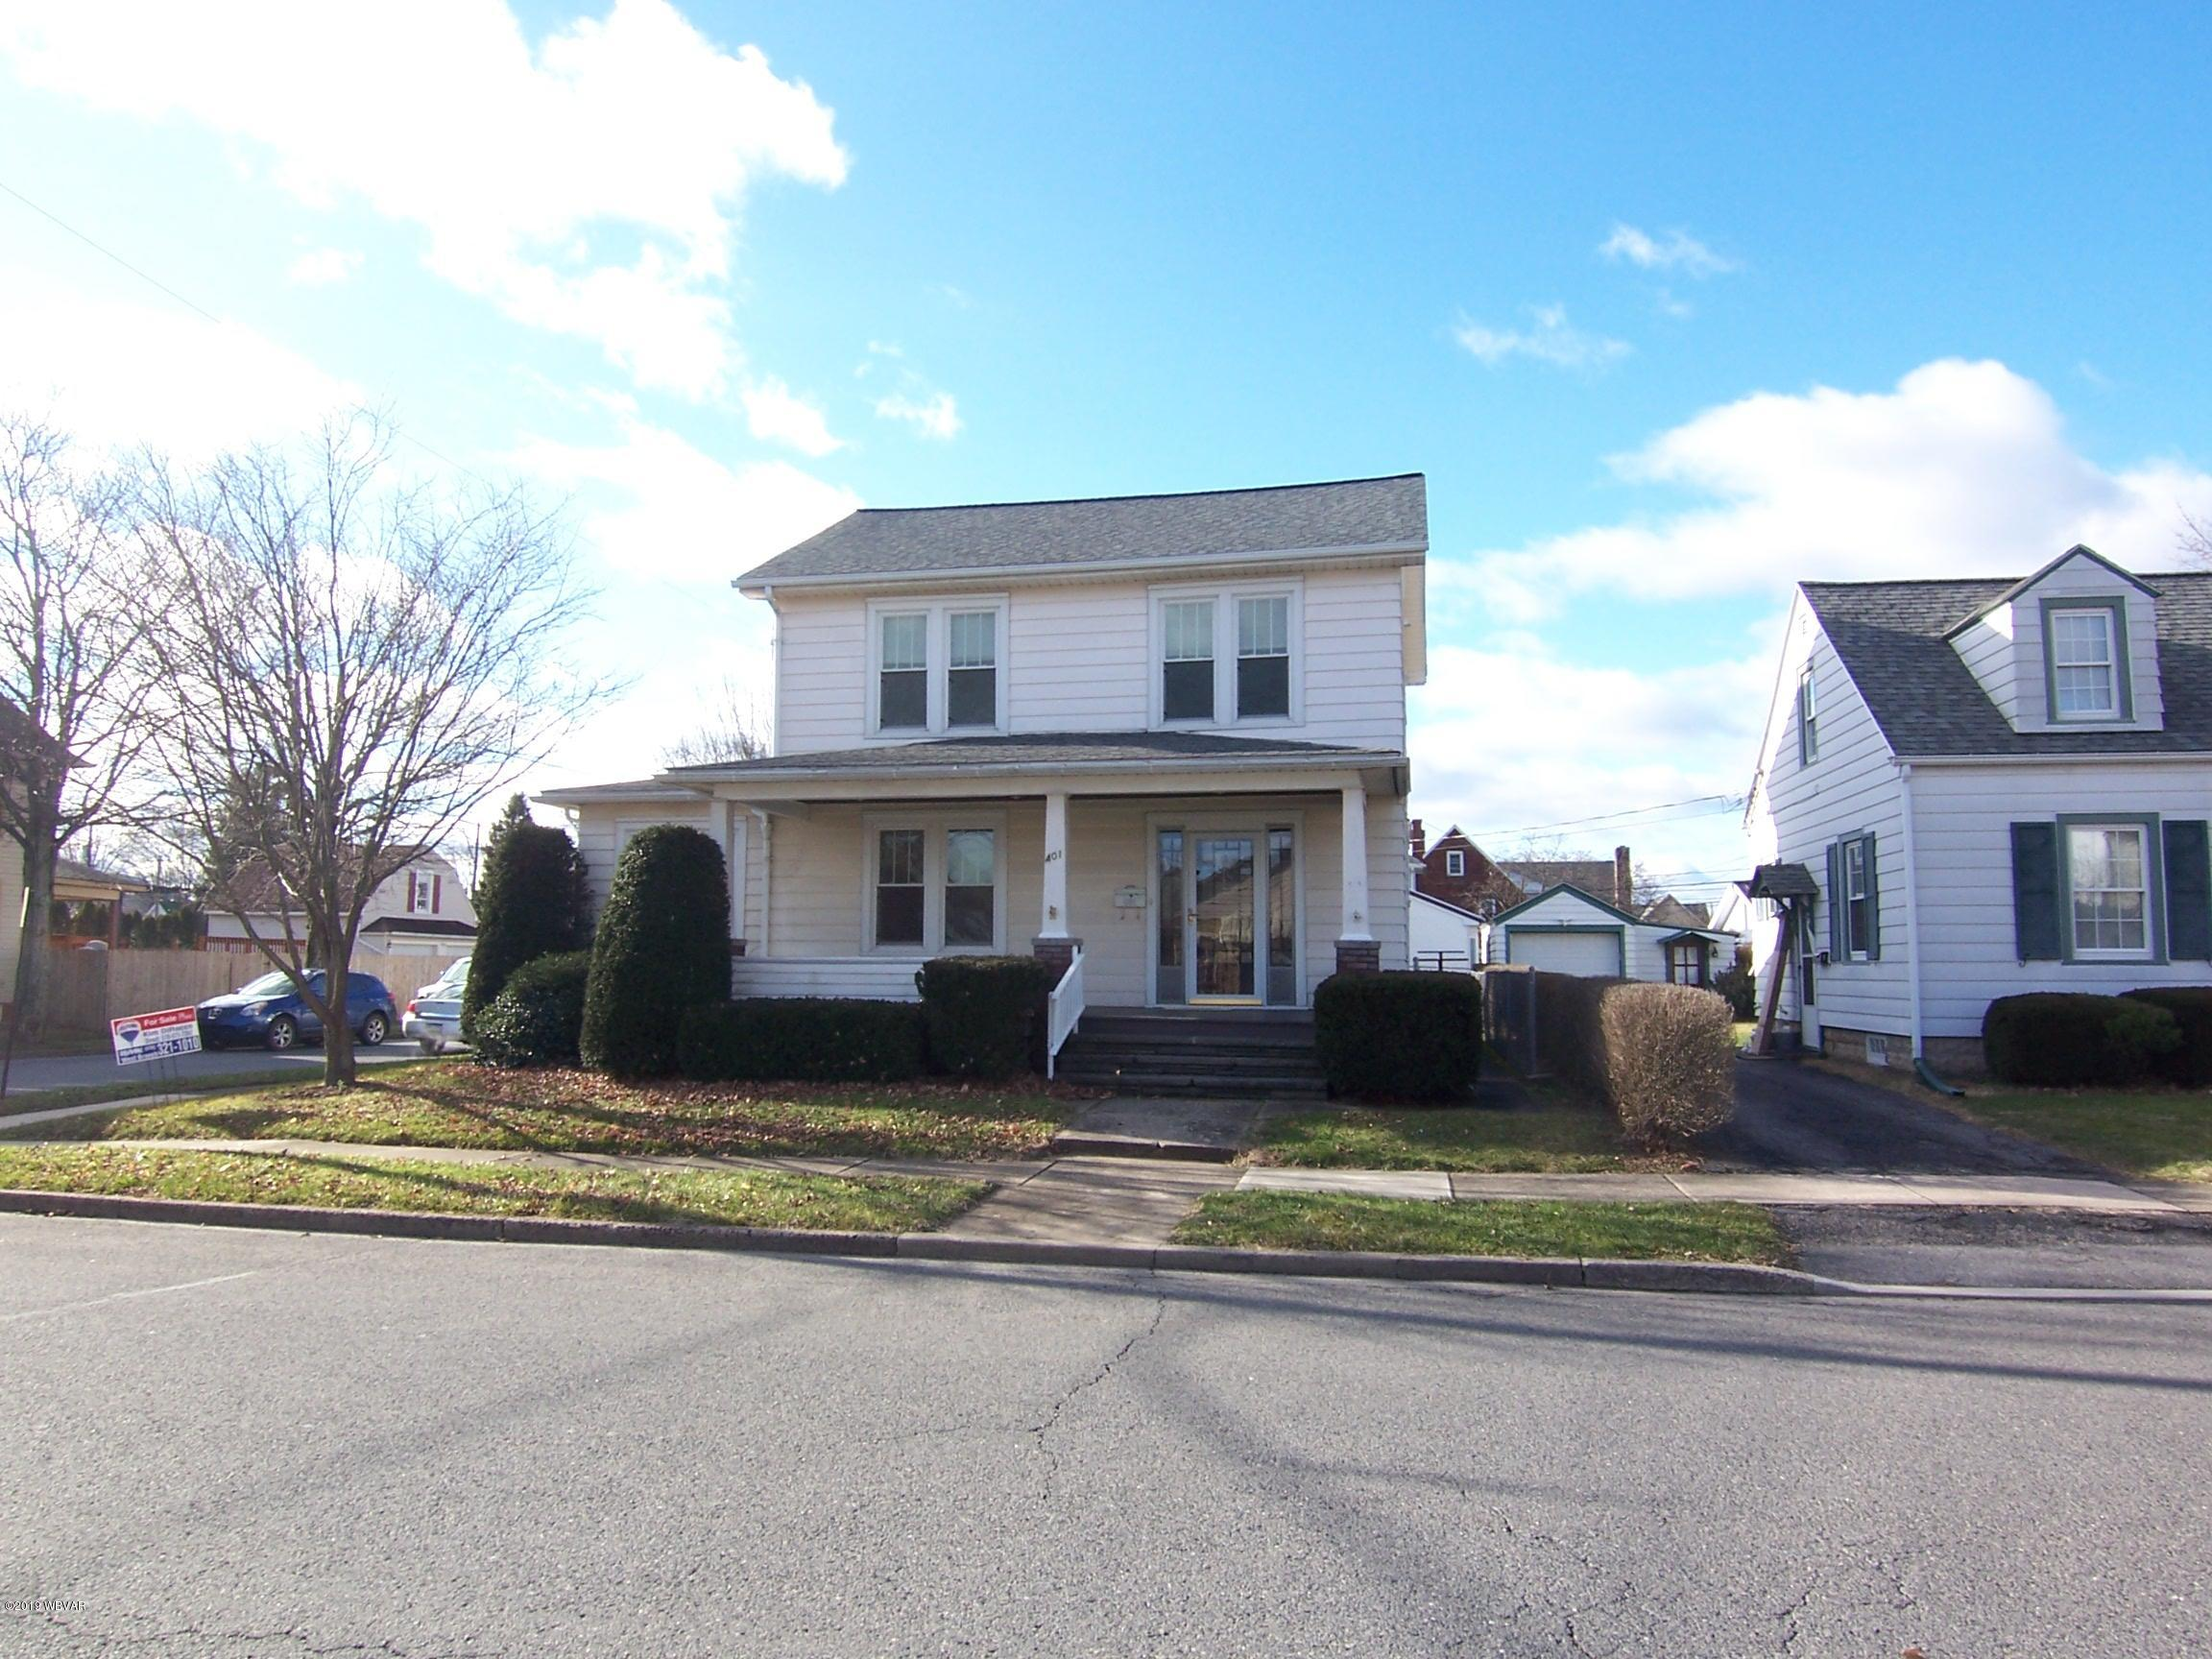 401 ARCH STREET,Montoursville,PA 17754,3 Bedrooms Bedrooms,1.5 BathroomsBathrooms,Residential,ARCH,WB-86188